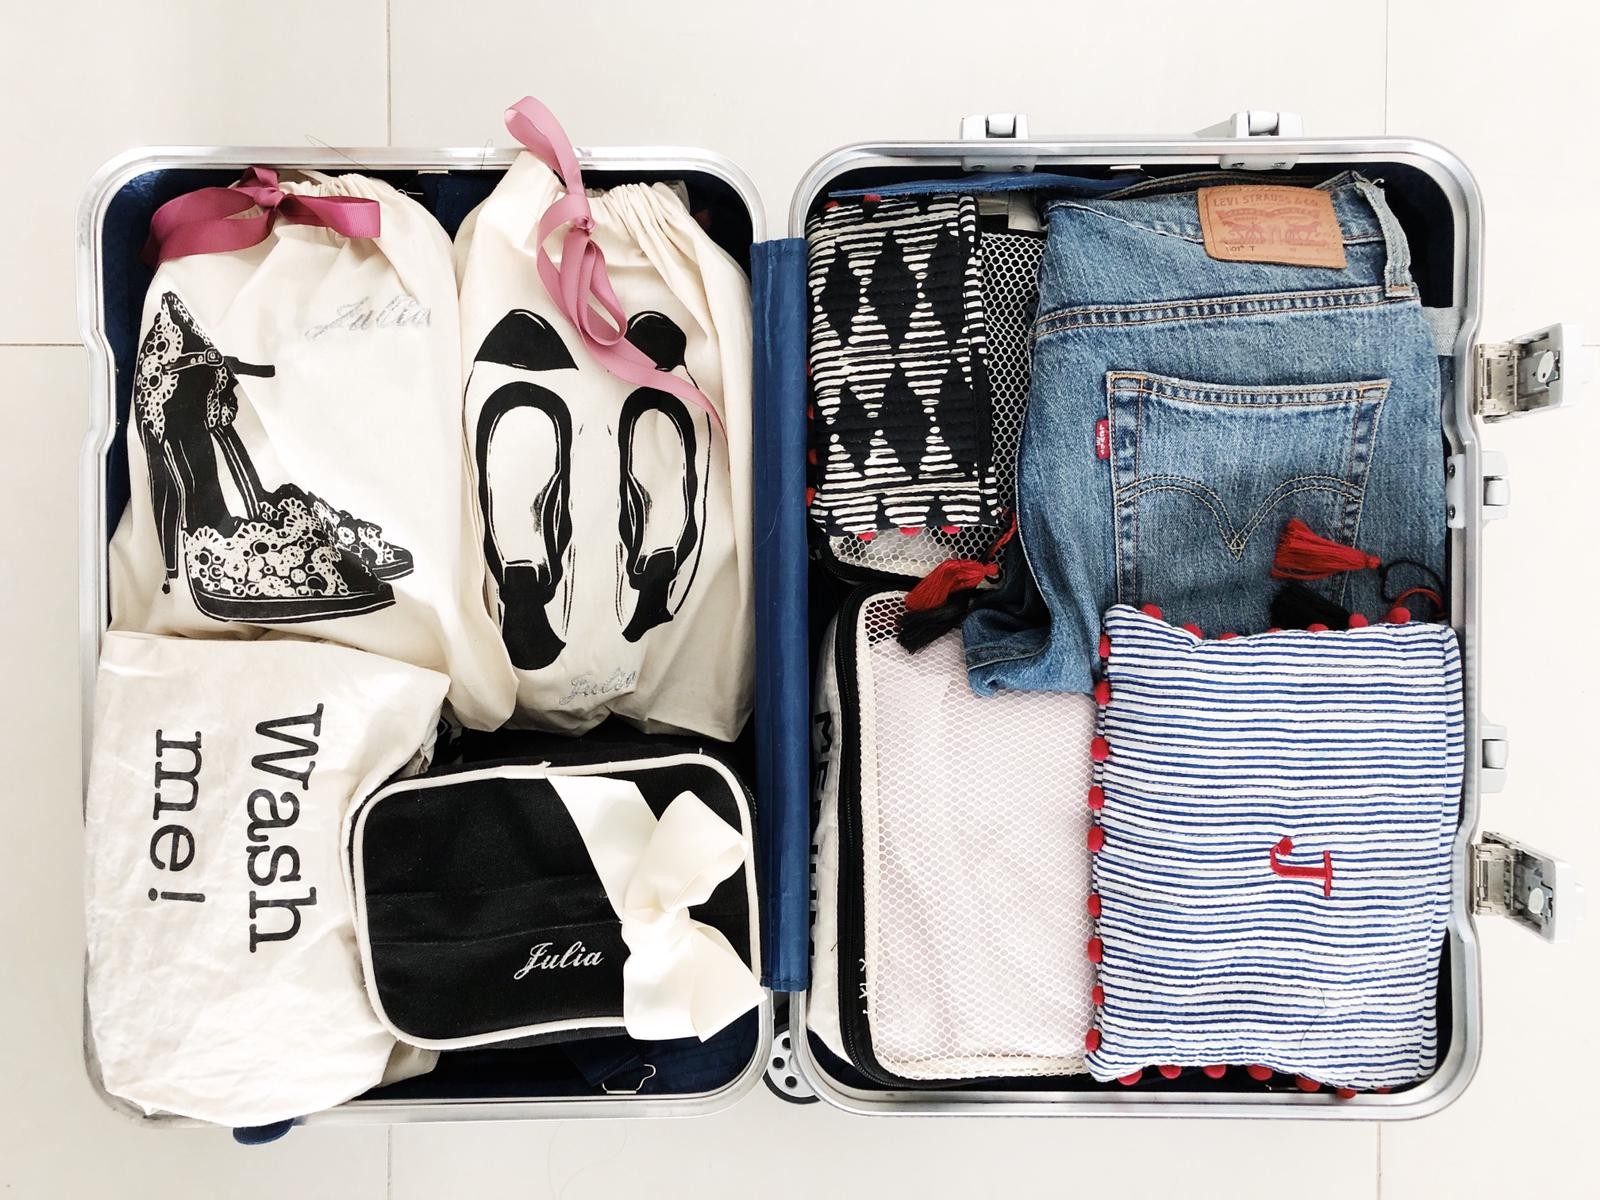 This is Julias suitcase when she recently went to Miami for a weekend trip.